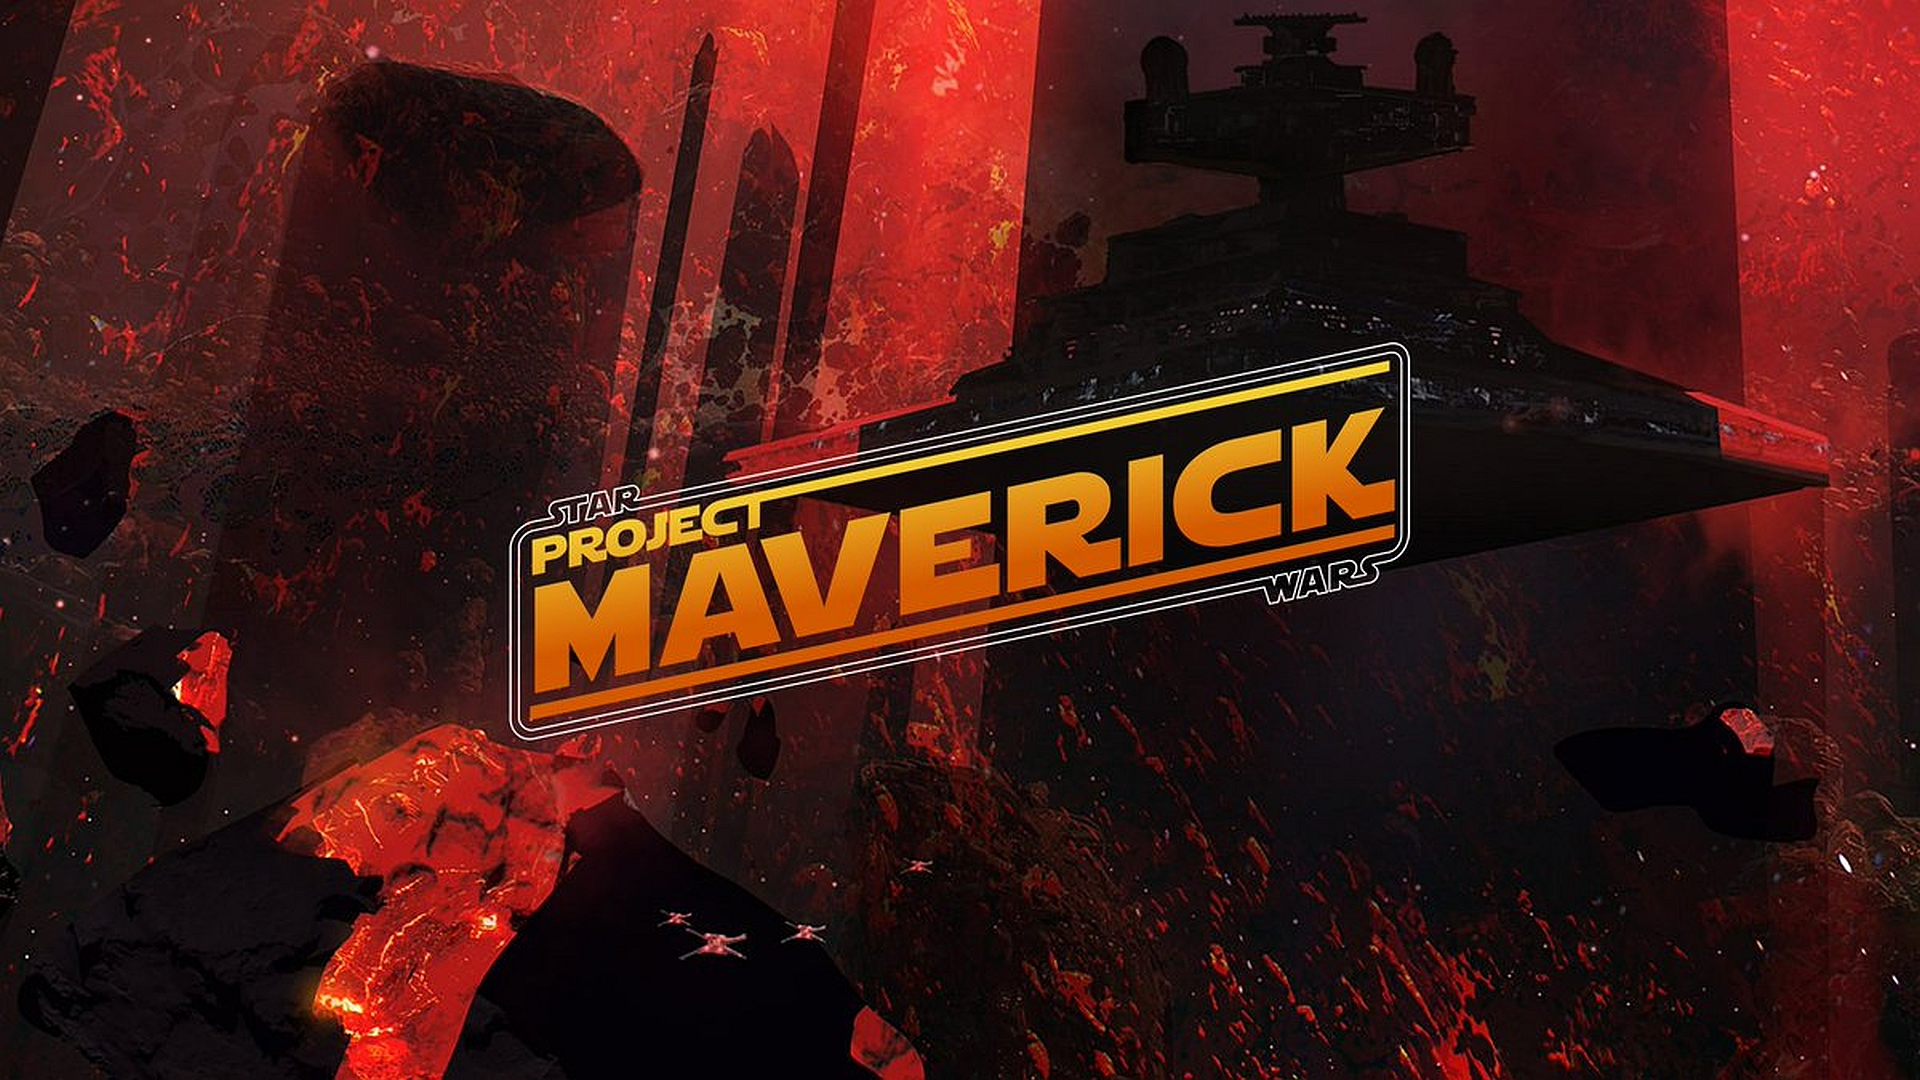 В европейском PlayStation Store обнаружили Star Wars Project Maverick